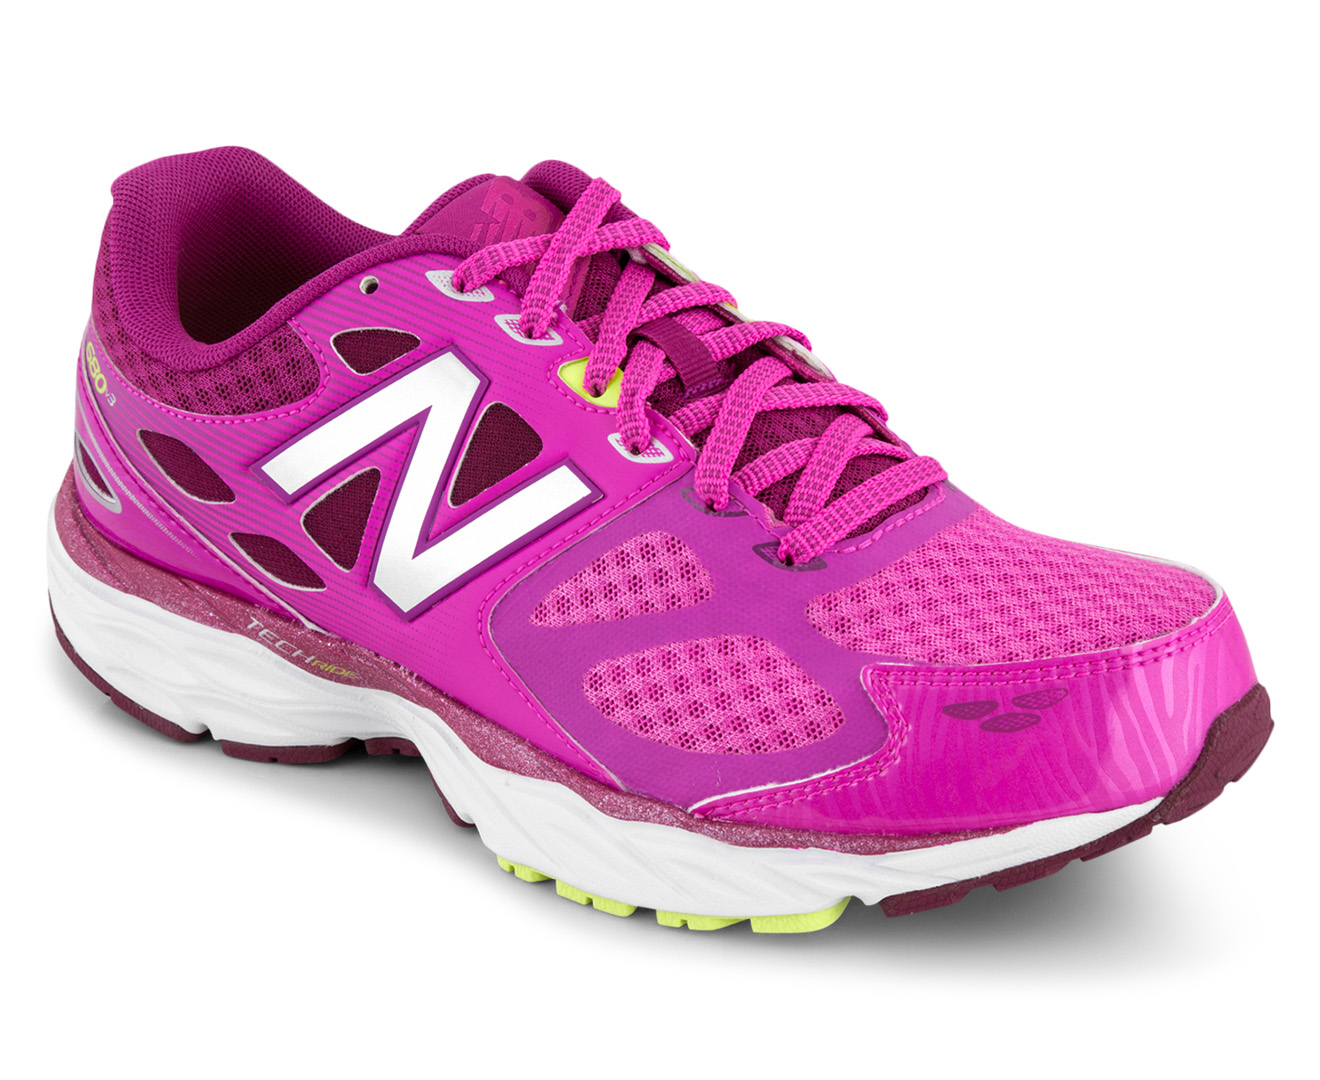 New Balance Women S Wide Fit 680 V3 Shoe Pink Silver